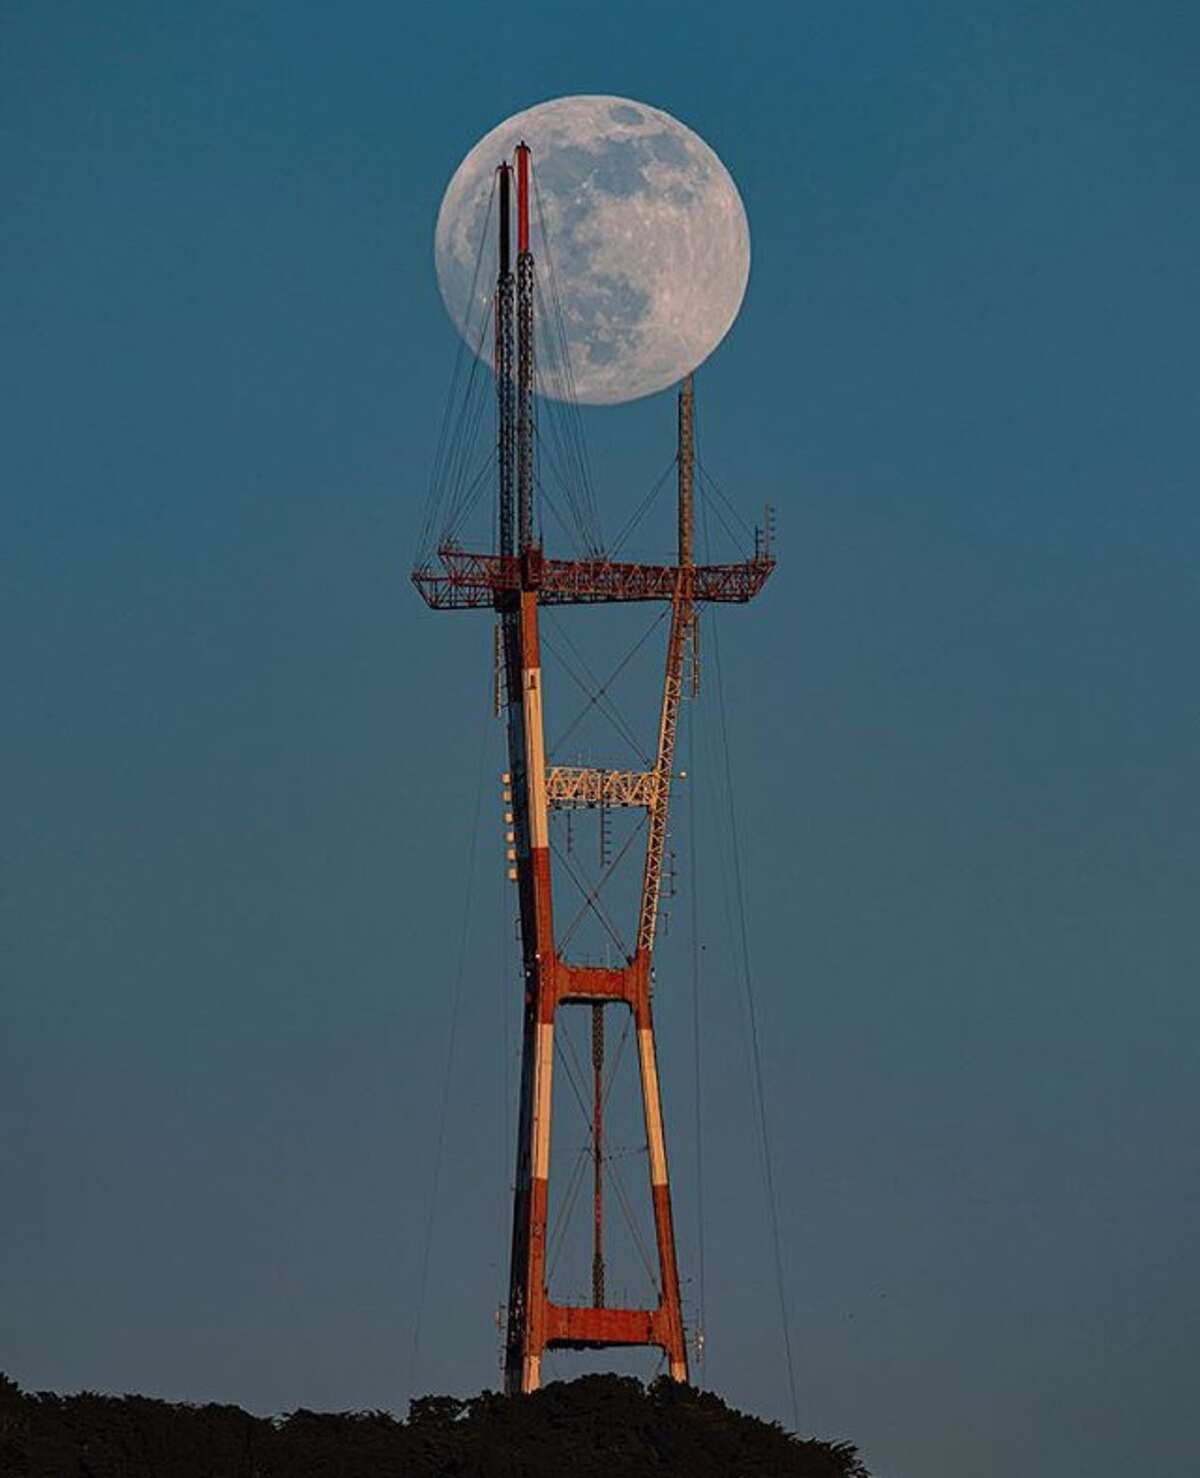 When one of the masts on the Sutro Tower was recently being repaired, @liewdesign composed this stunning photo of a full moon apparently passing through its structure.